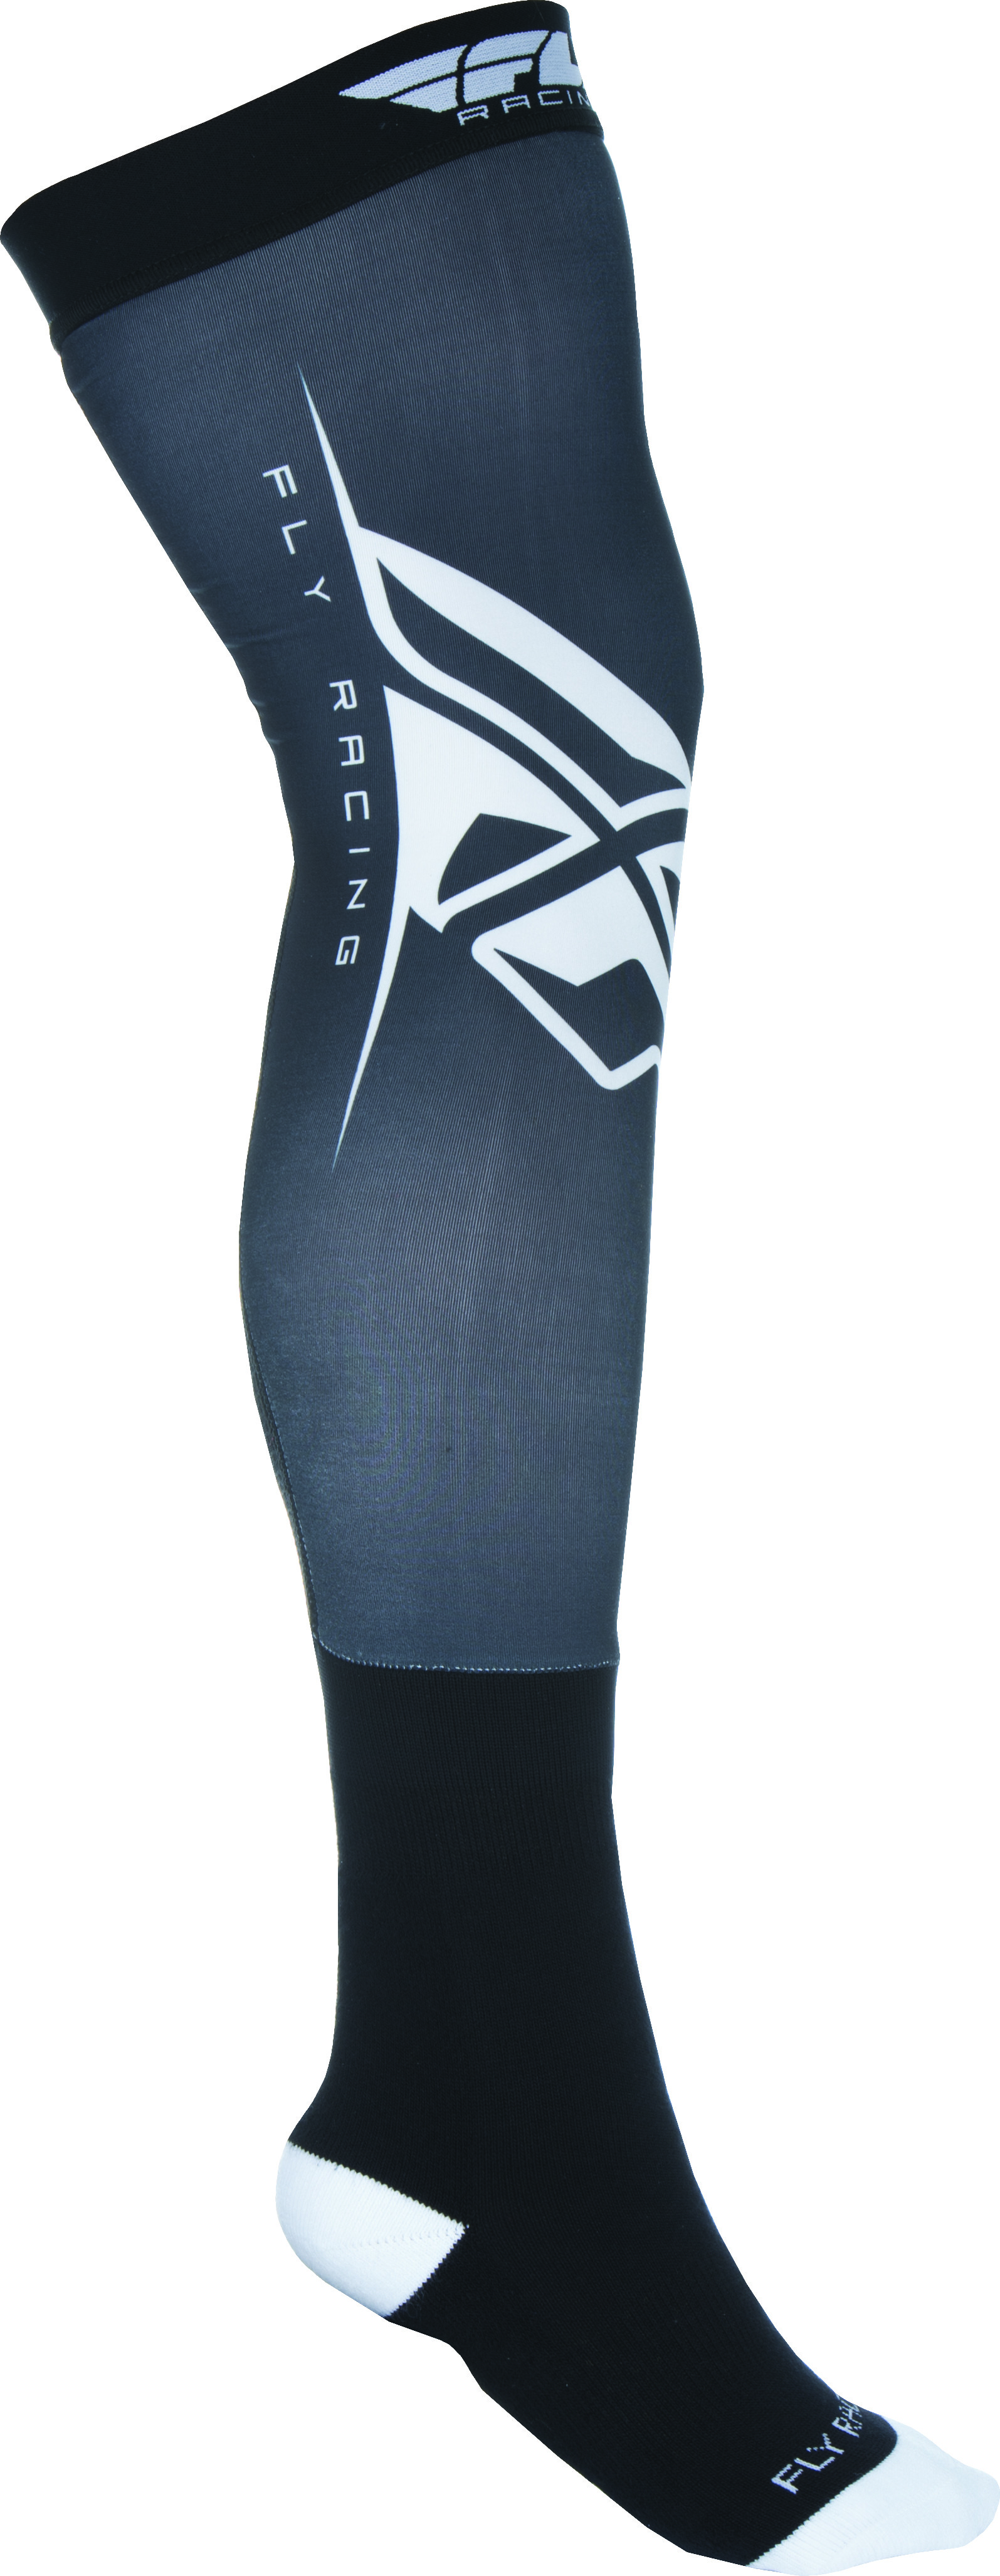 Knee Brace Sock Black/White L/X